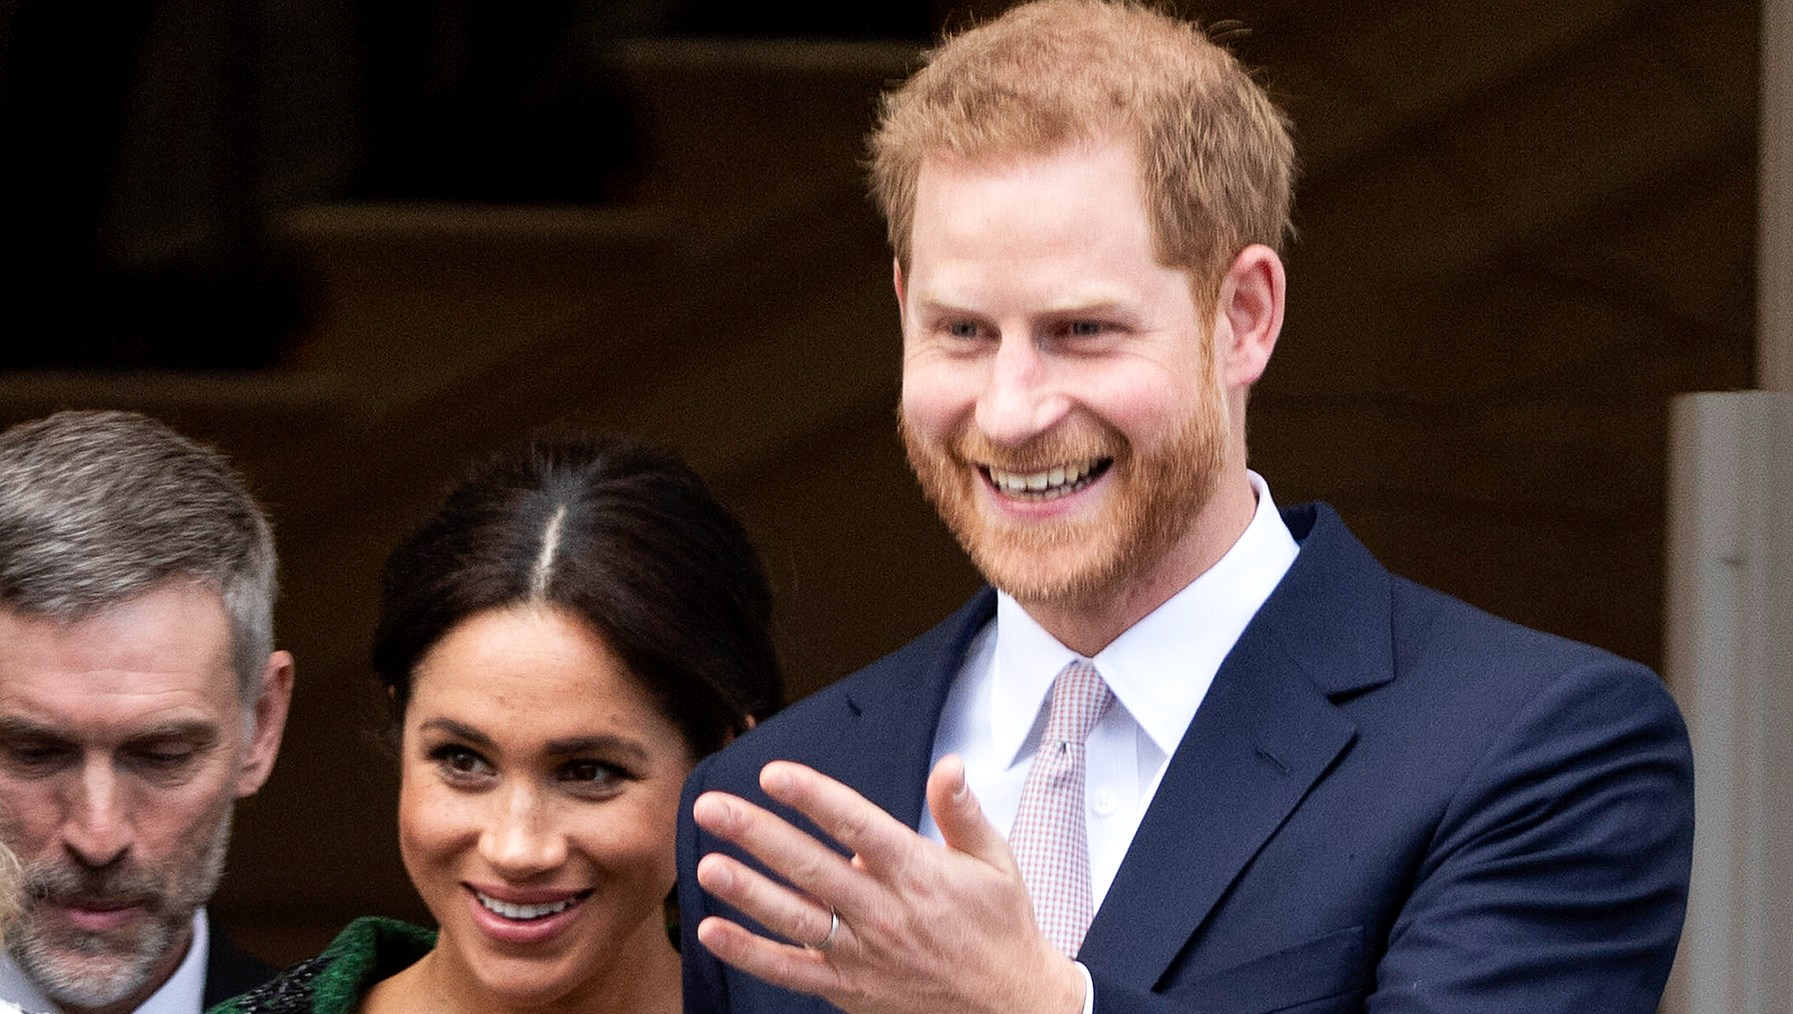 Prince-Harry-Sings-a-Classic-'Sound-of-Music'-Song-to-Children